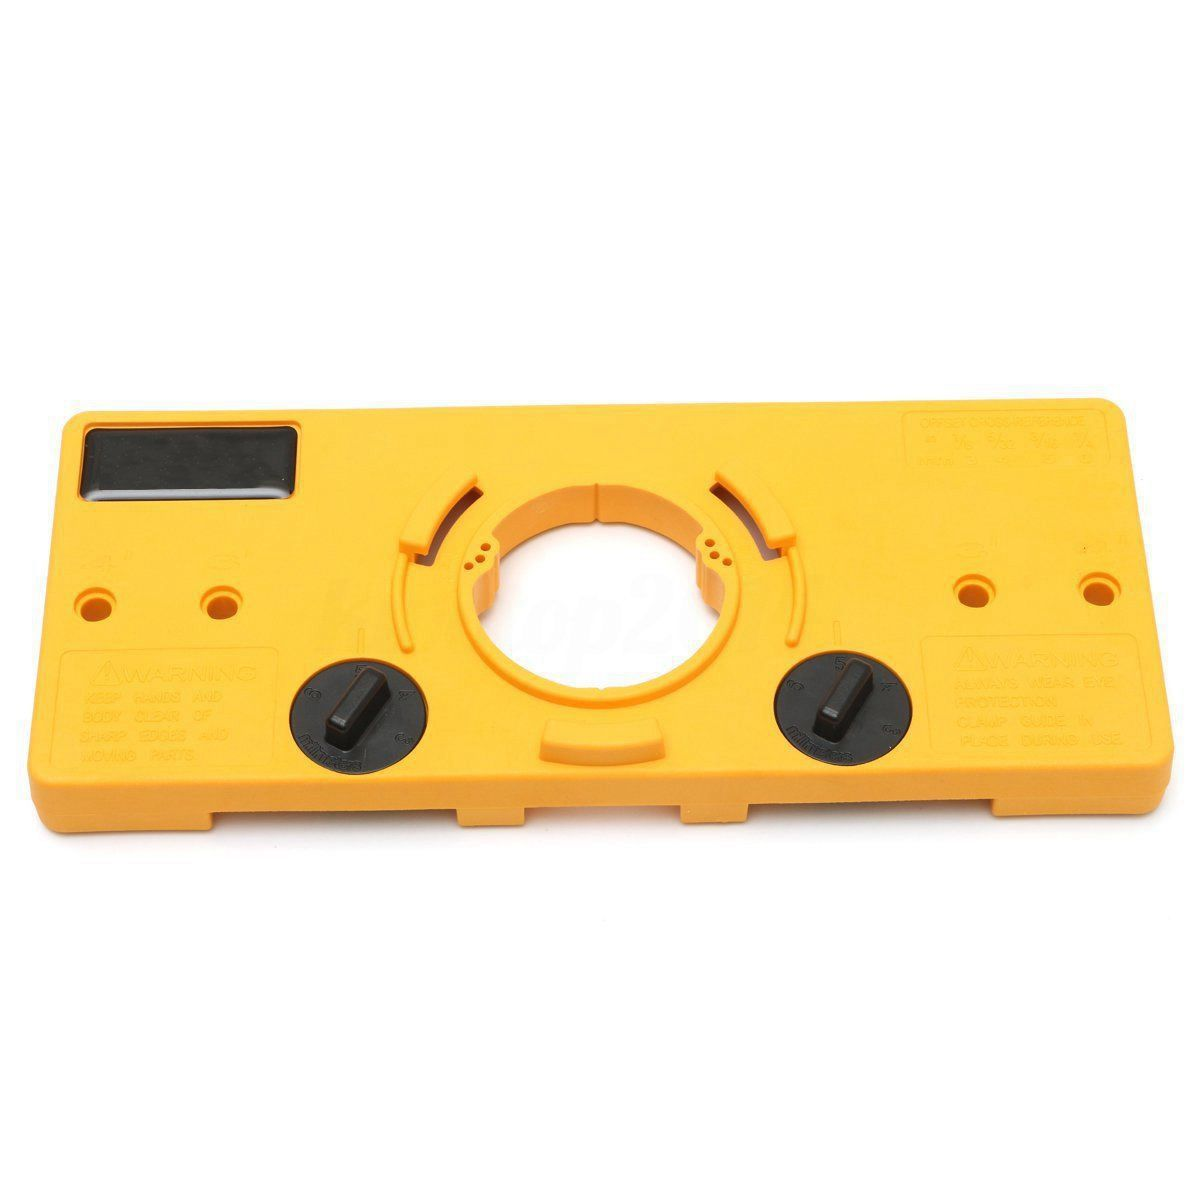 WSFS Hot 35MM Cup Style Hinge Boring Jig Drill Guide Locator Set Pocket  Door Hole Template Set For Kreg Woodworking Tool Wood (Yellow)